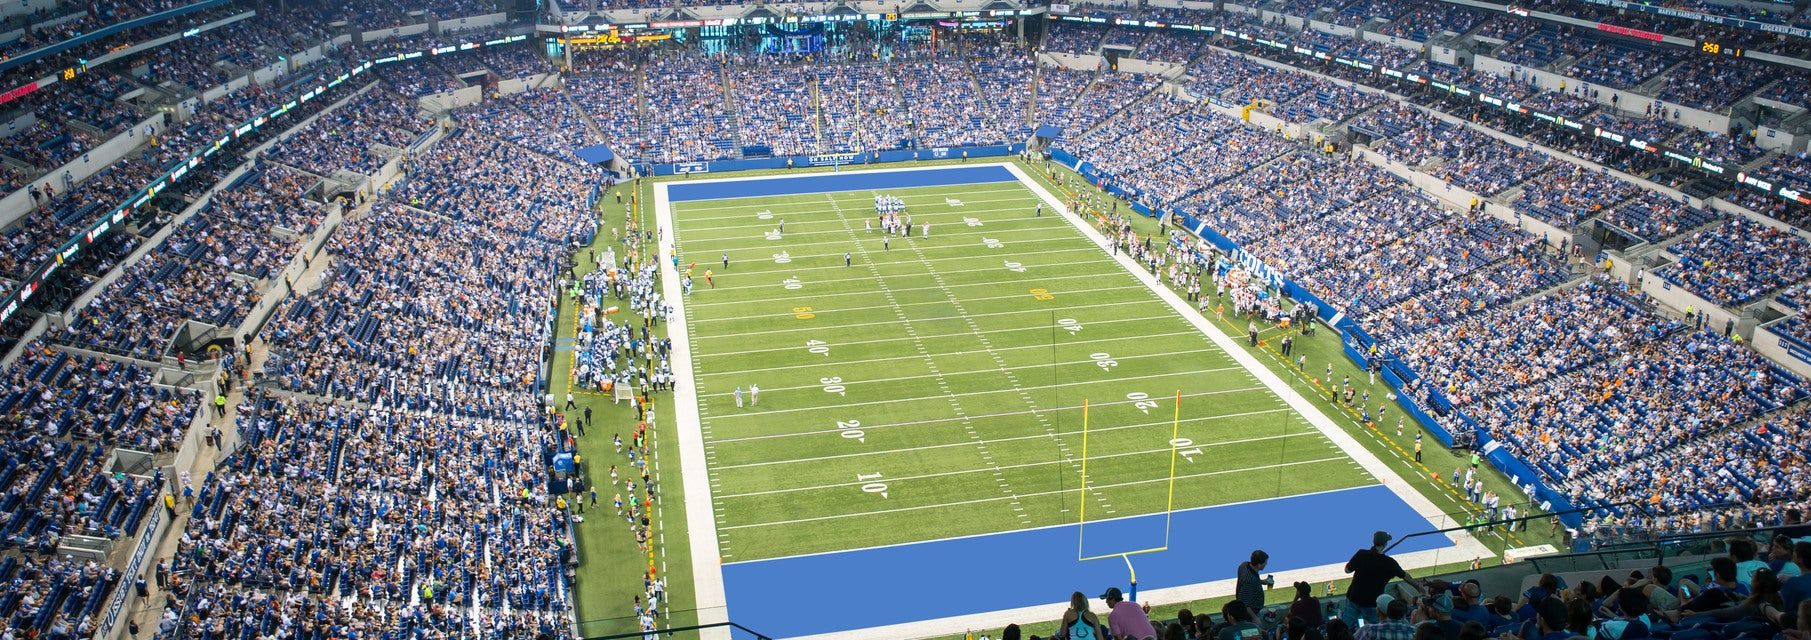 Seat view from Terrace End Zone